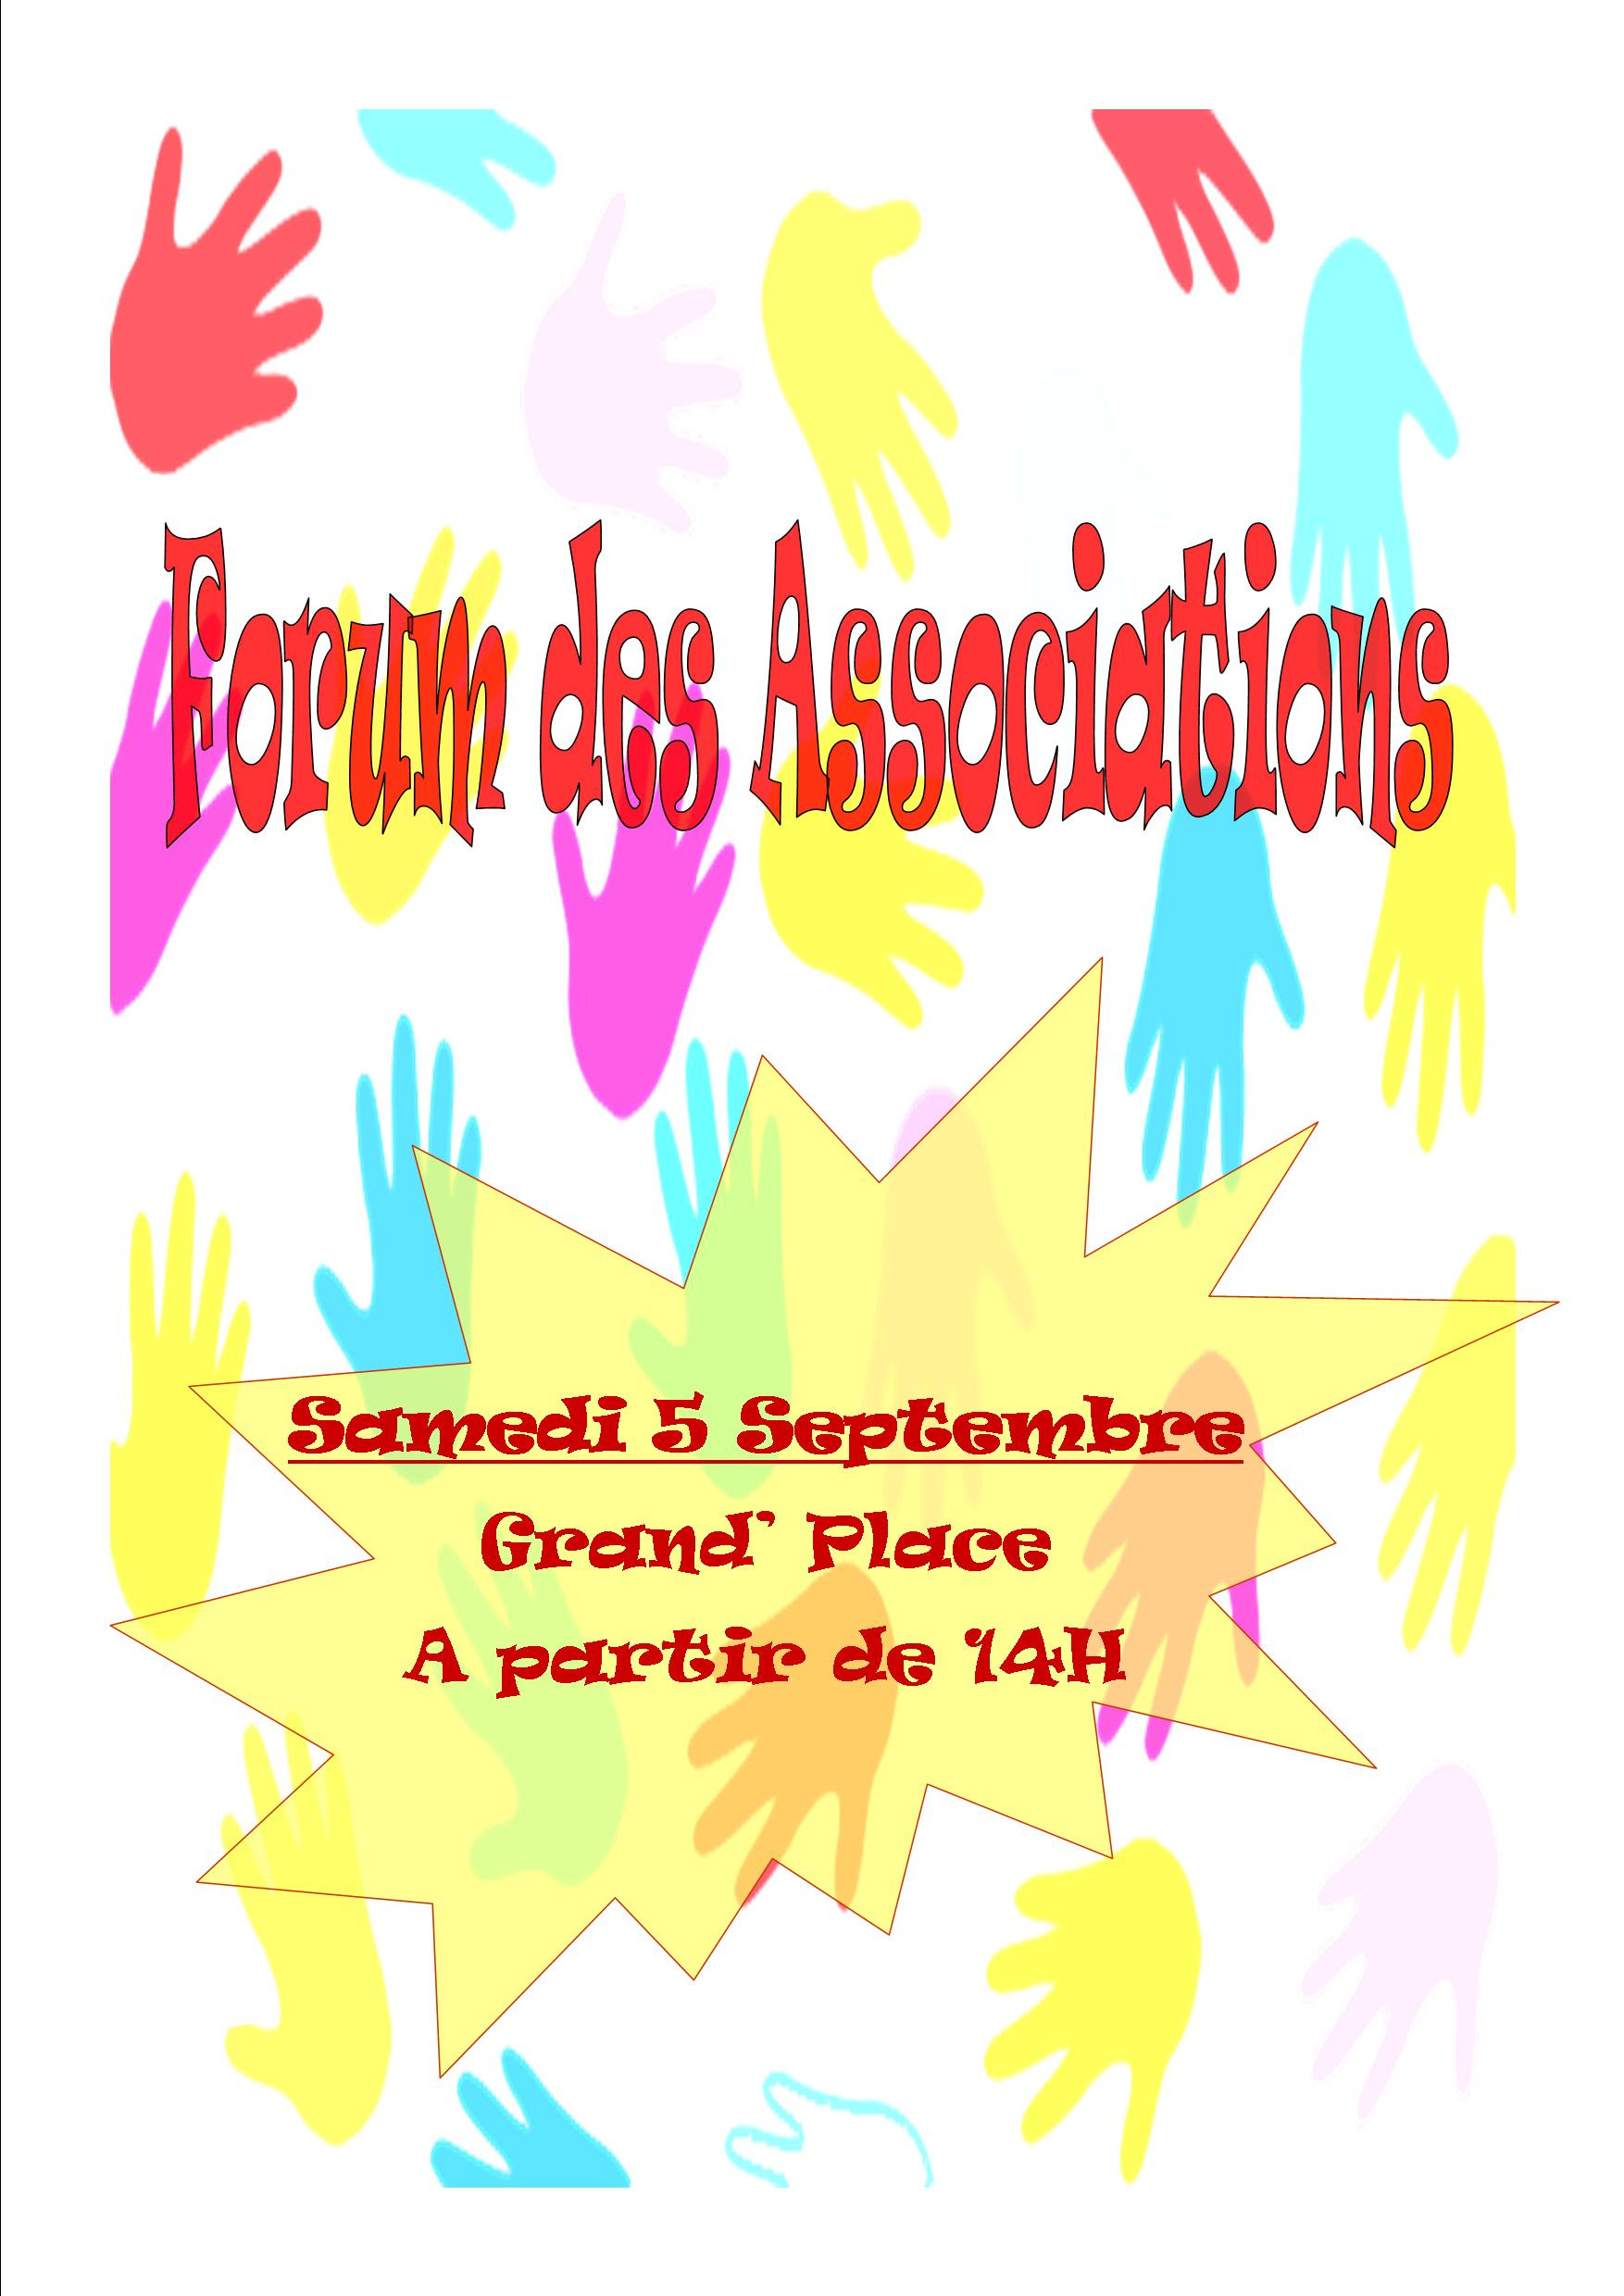 http://www.pourrieres.fr/wp-content/uploads/2015/08/Composition1.jpg